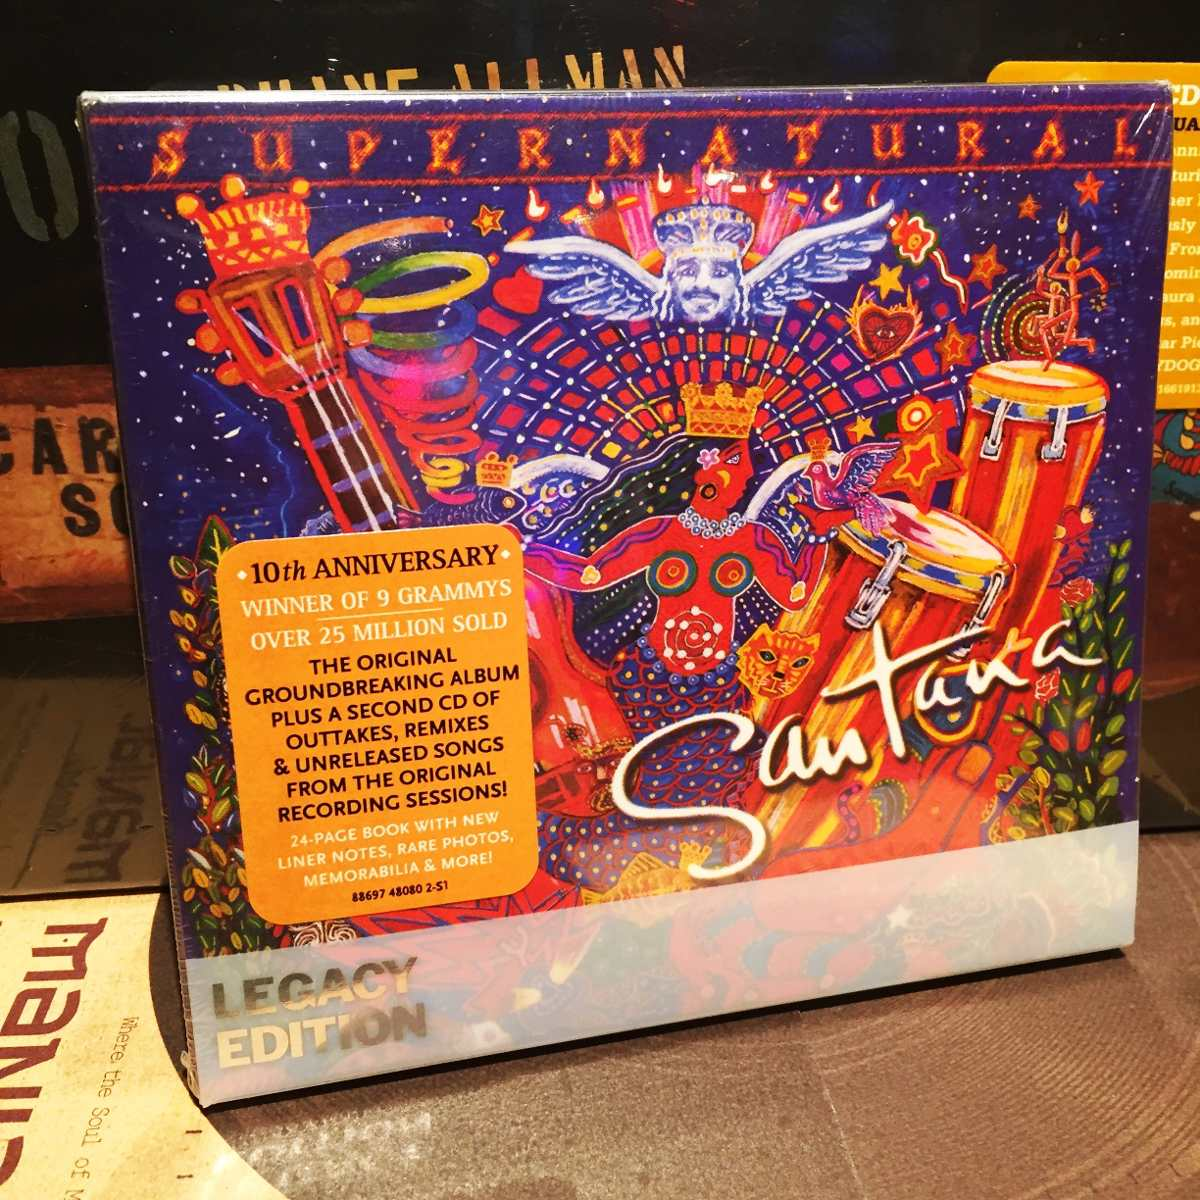 santana supernatural legacy edition deluxe 2 cd 724 46 en